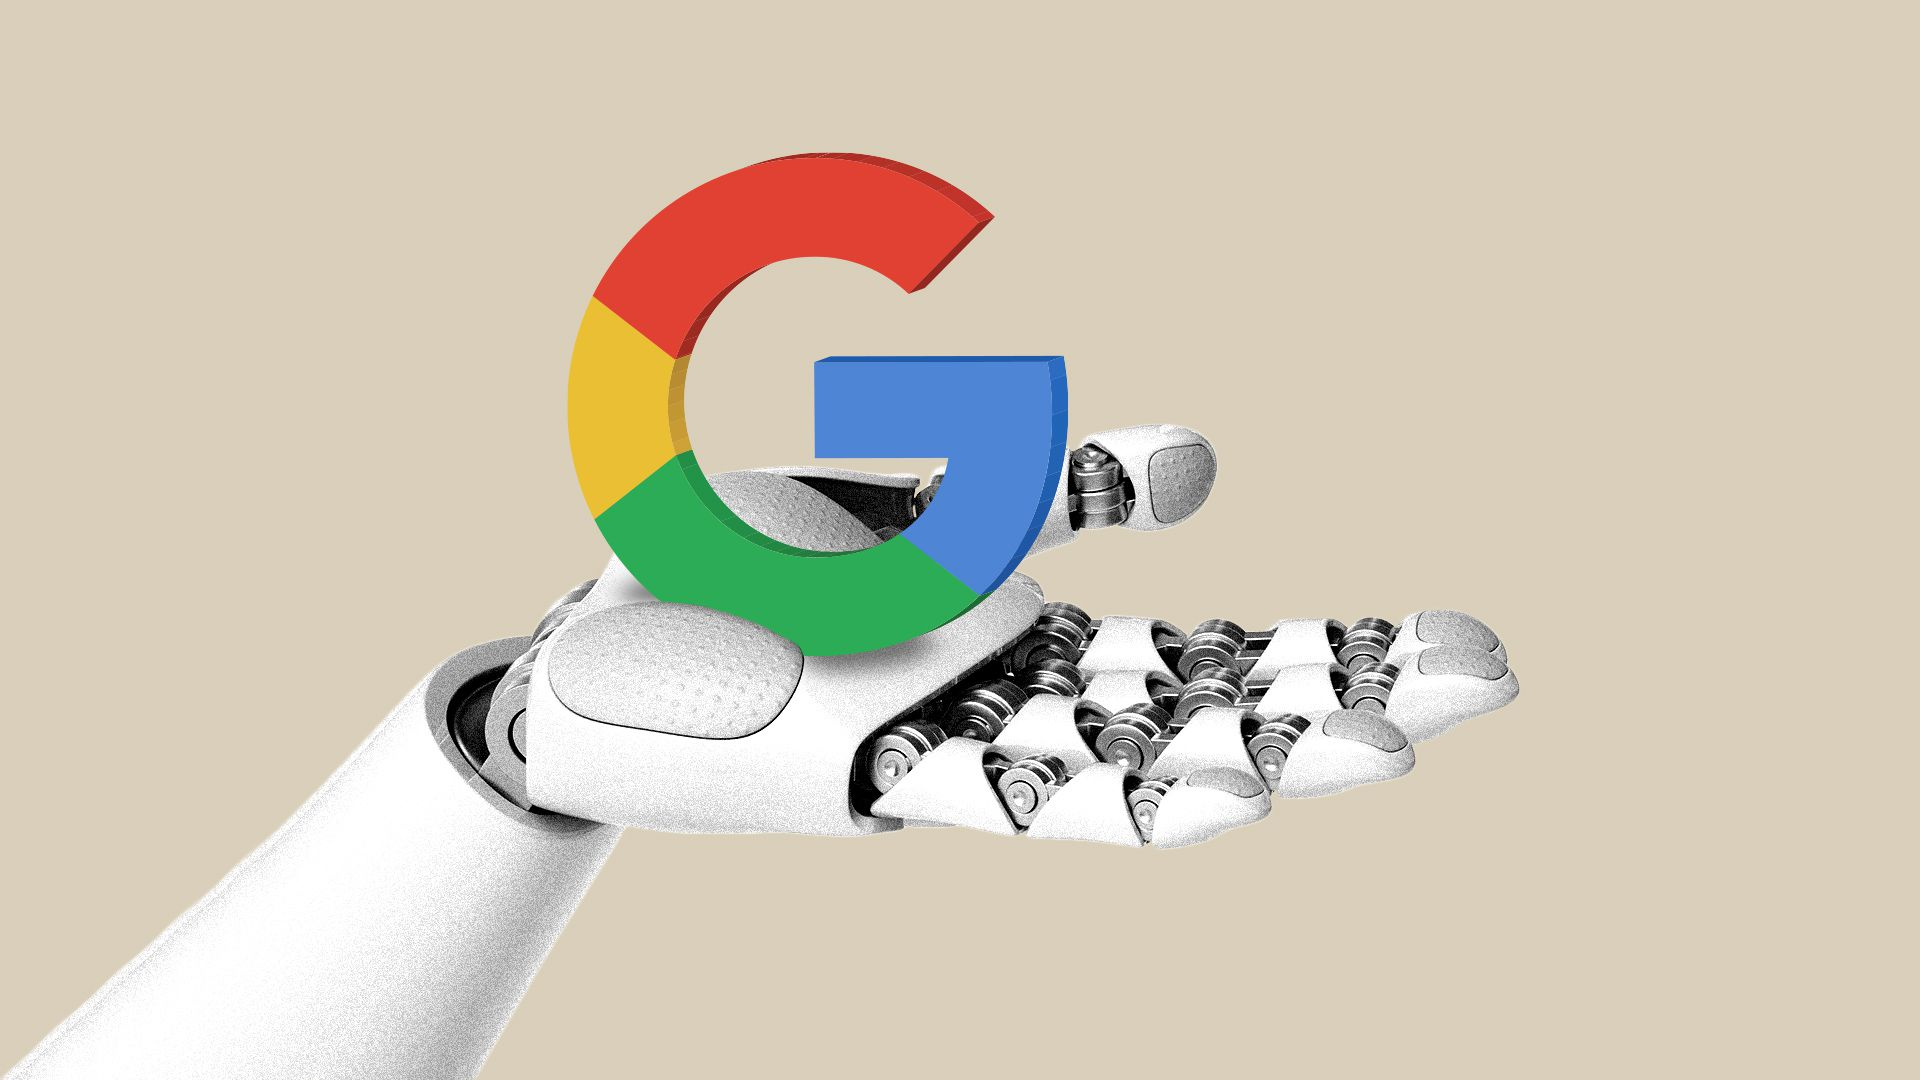 Illustration of a robot hand holding up the Google G